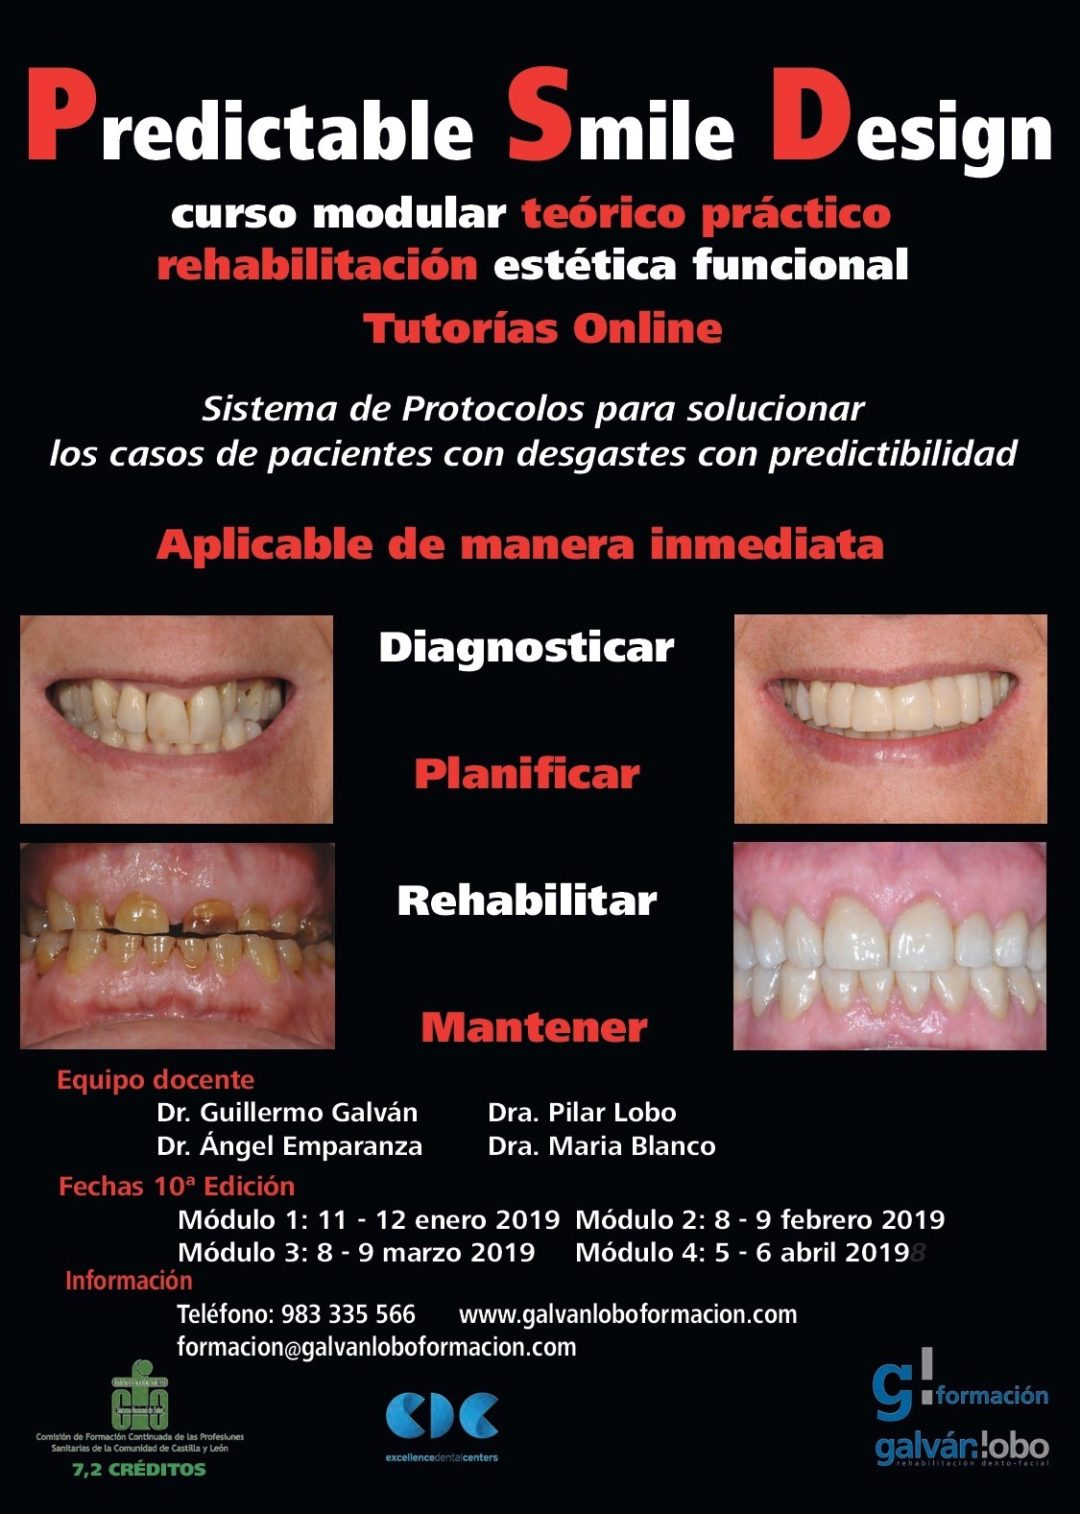 Predictable Smile Design. Curso Modular by Galván Lobo Formación